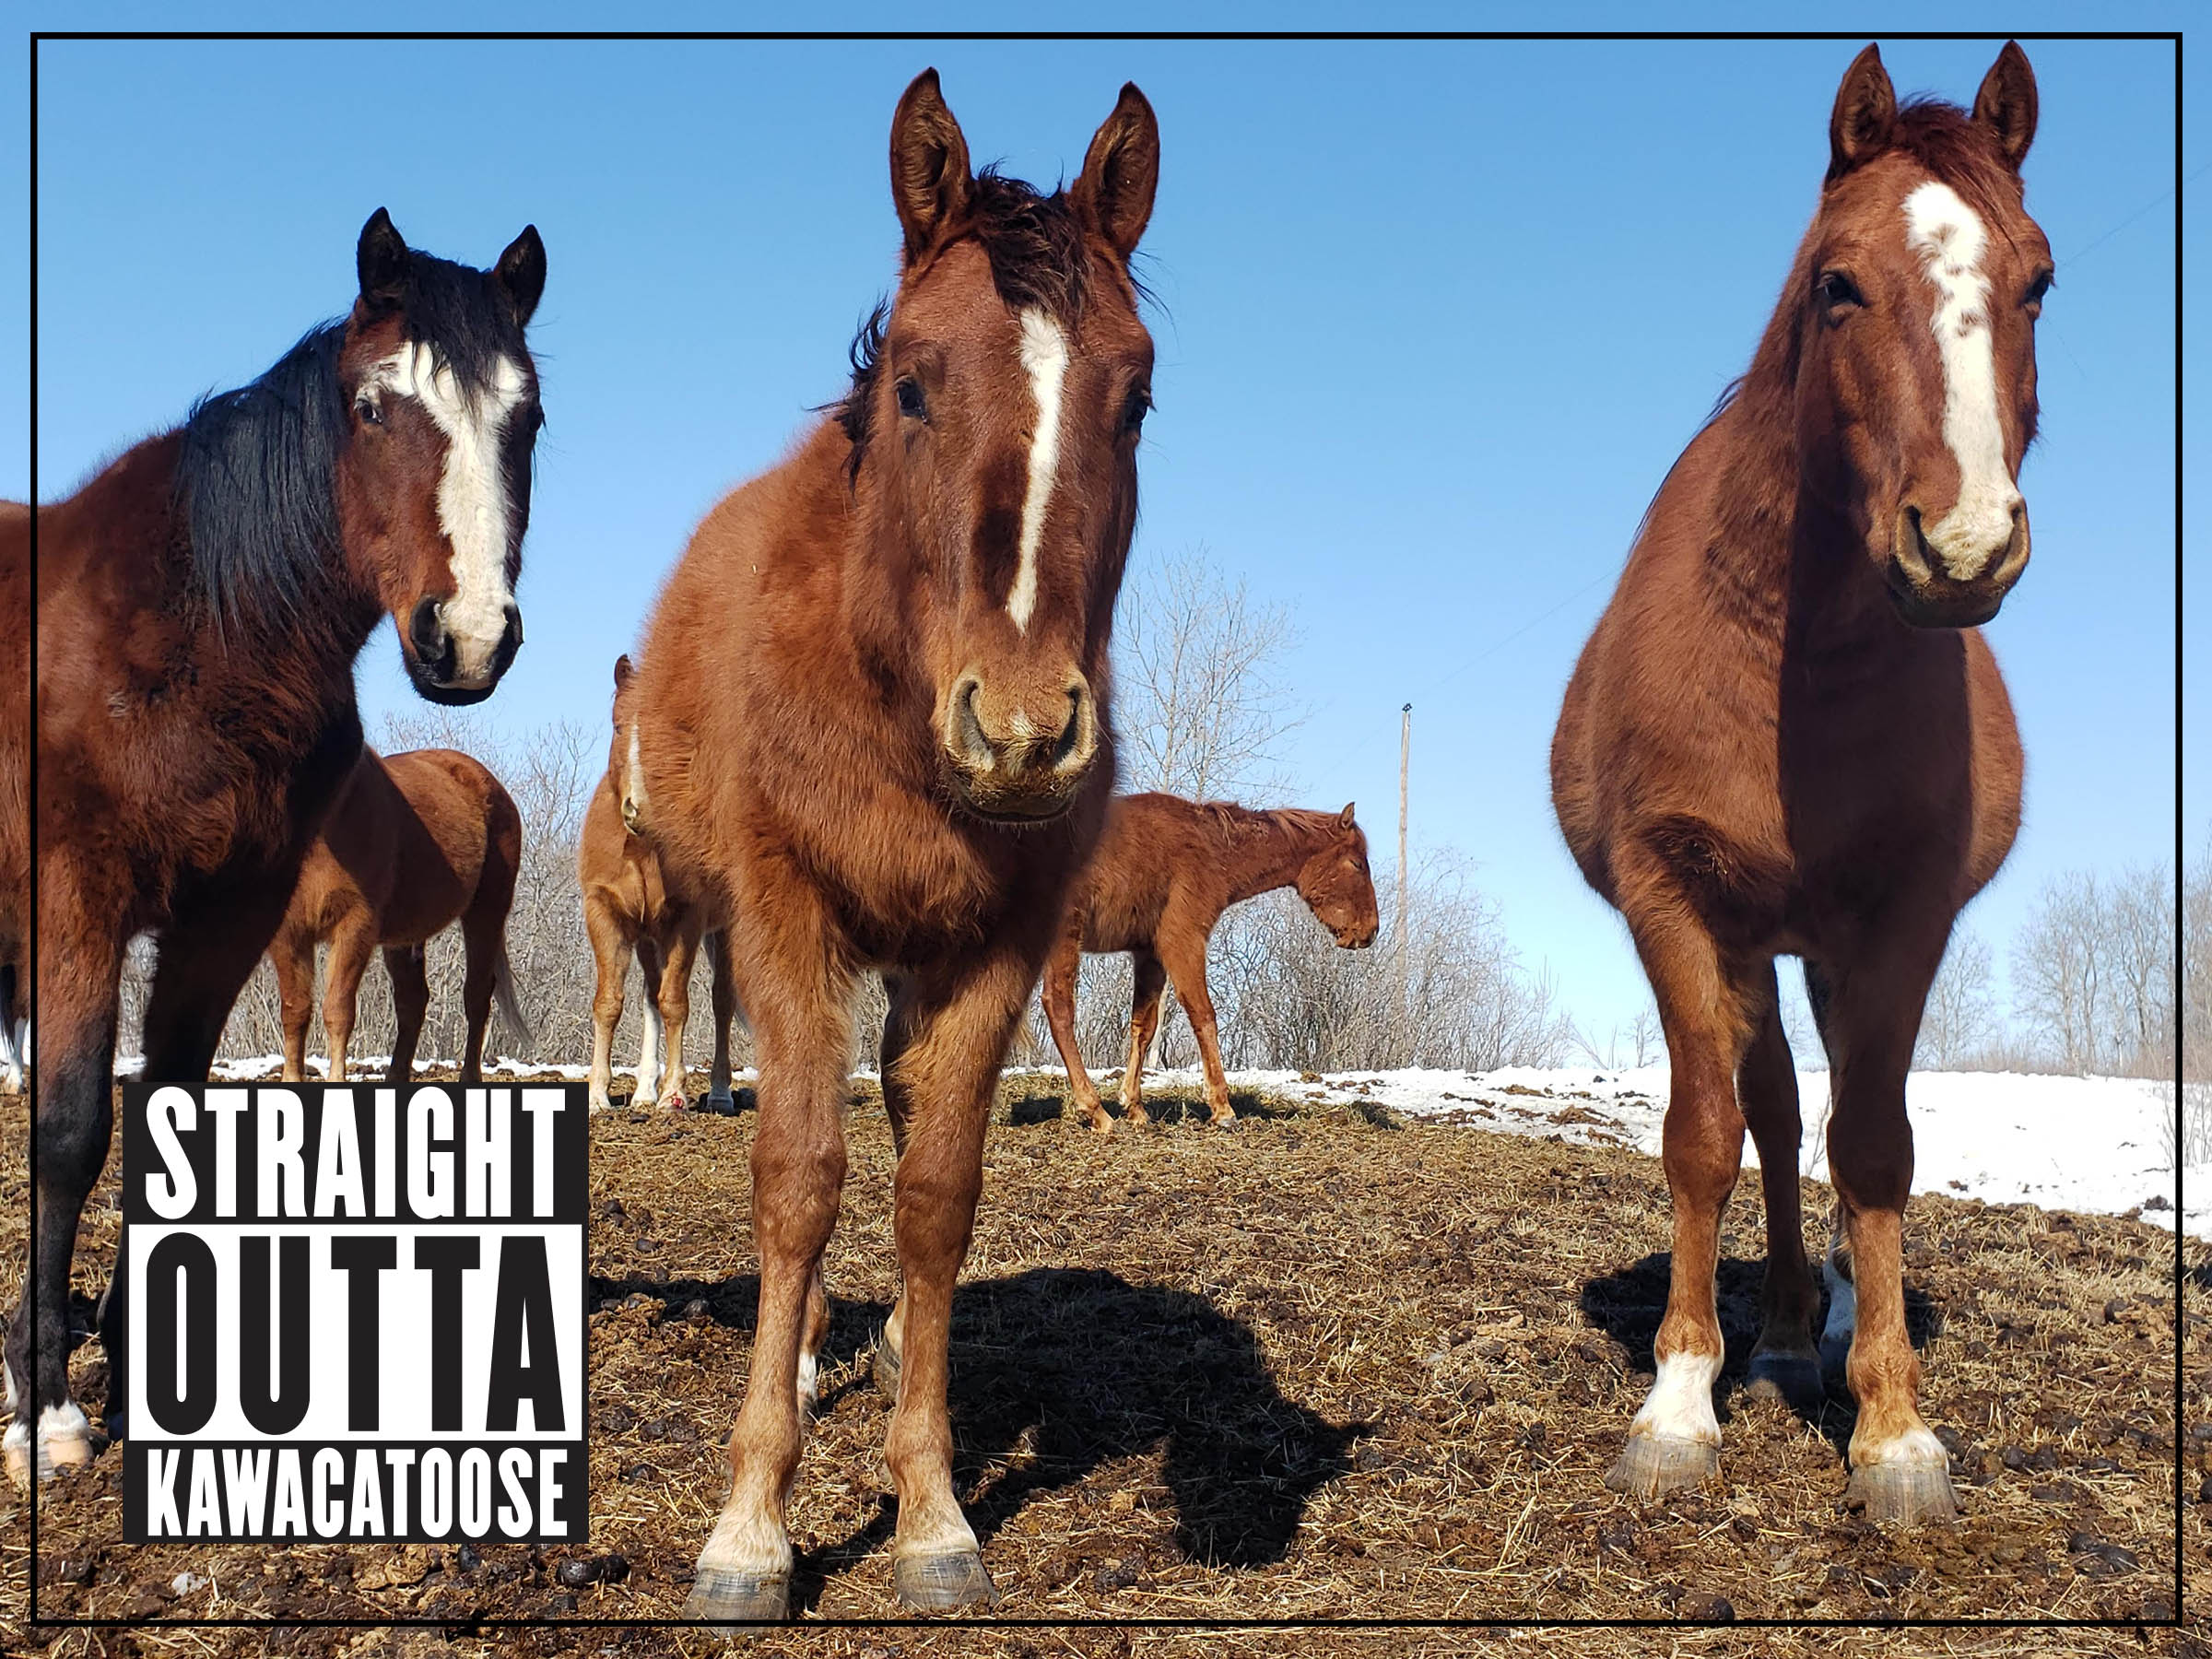 straight outta kawacatoose - horse cover photo